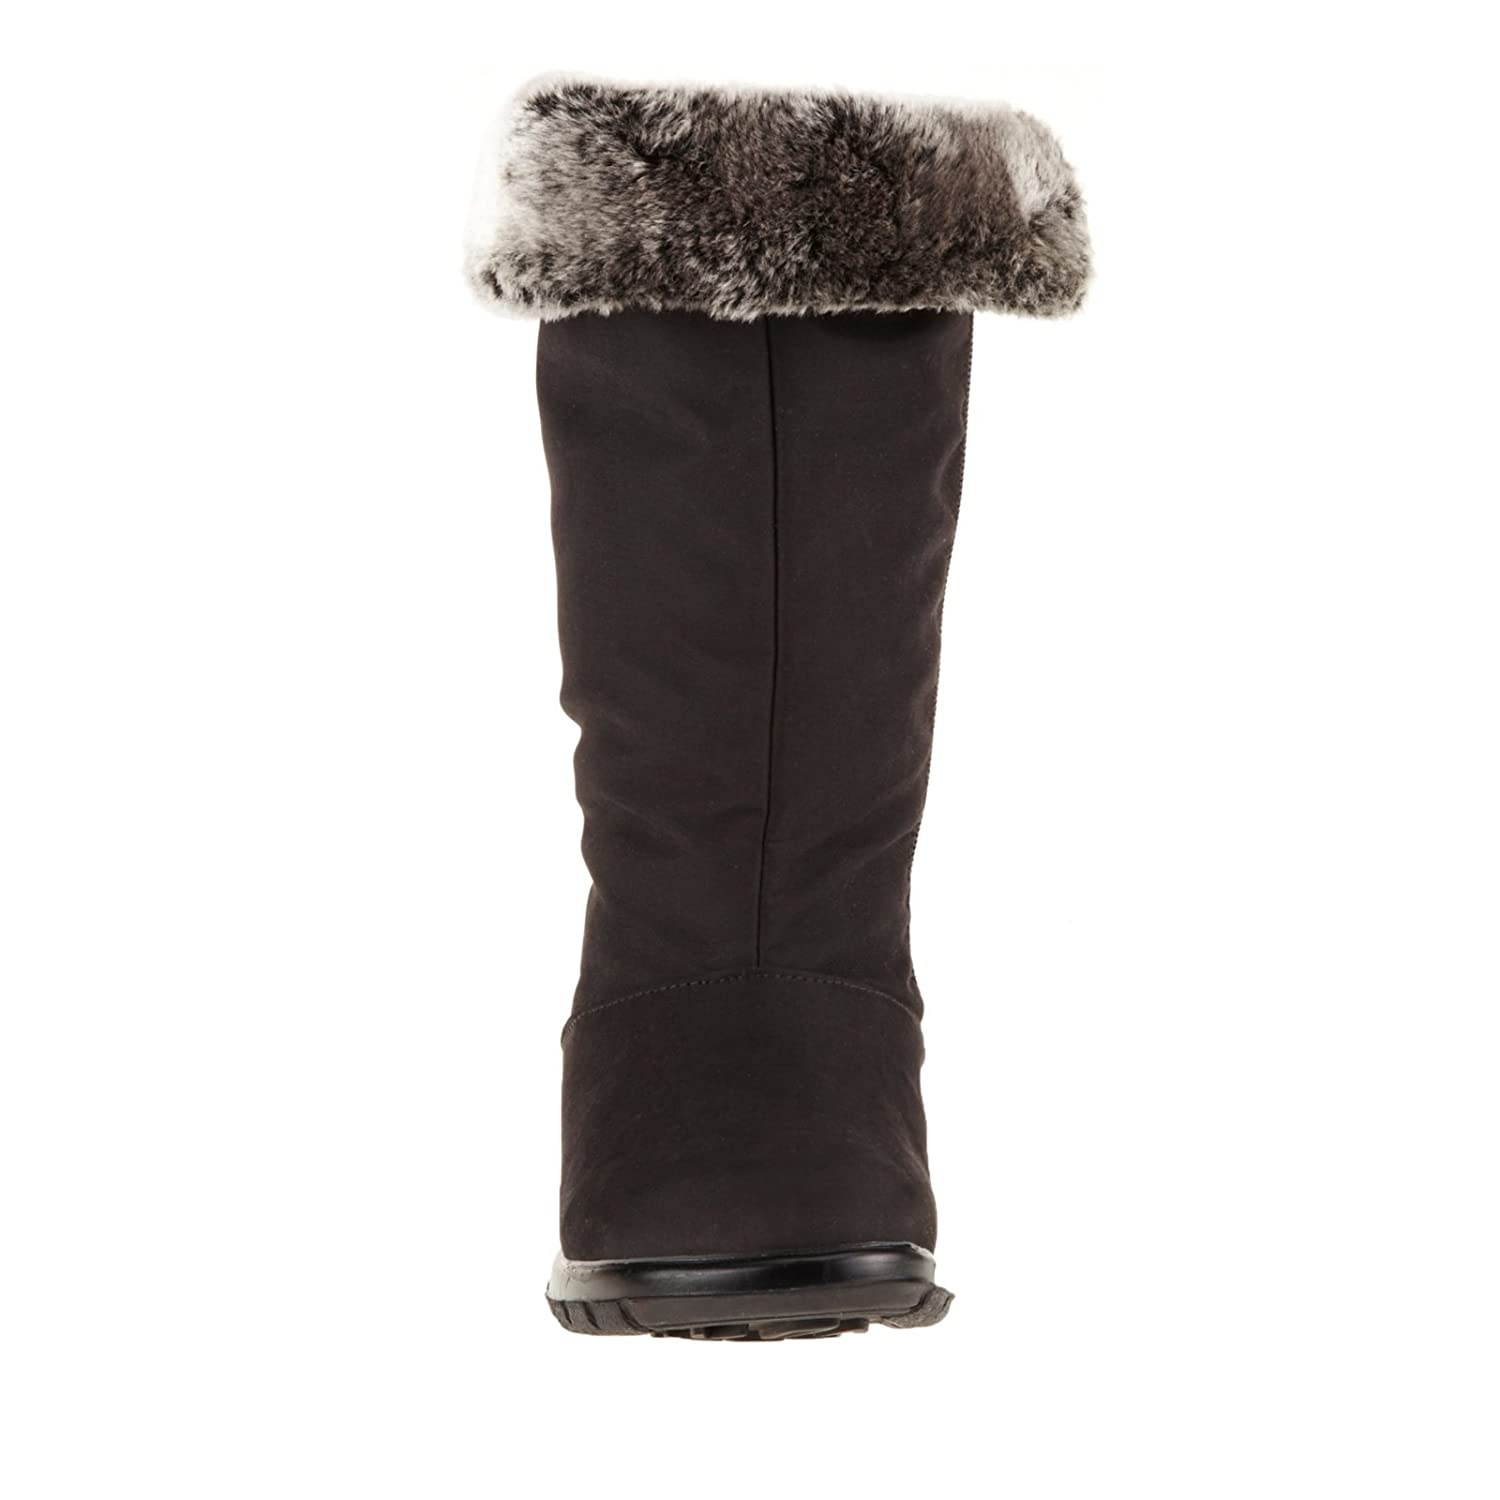 Toe Warmers B00476SW6C Women Boots Janet B00476SW6C Warmers 6.5 E US|Black fffc5b